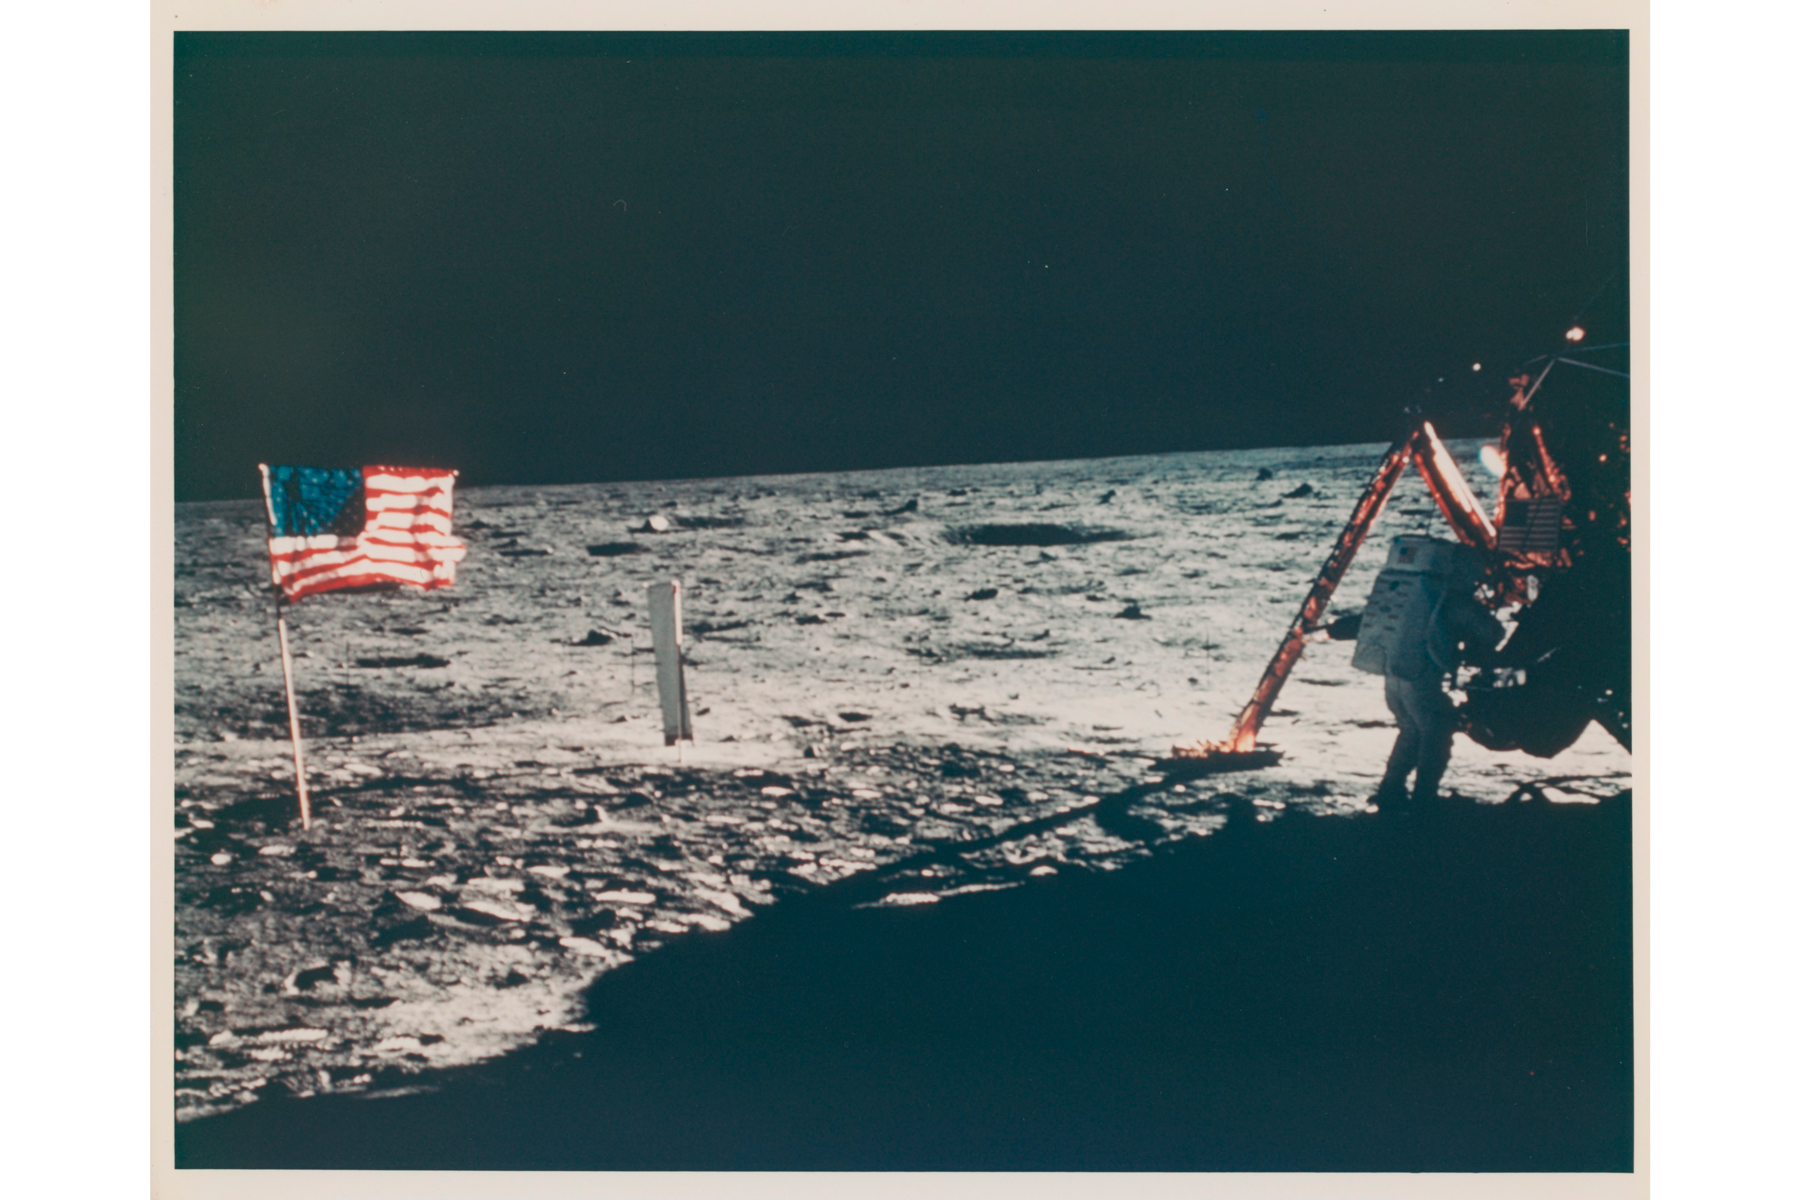 Lot 345, The only photograph of Neil Armstrong on the Moon, July 16-24,1969. BUZZ ALDRIN [APOLLO 11]. Estimate: £30,000-50,000